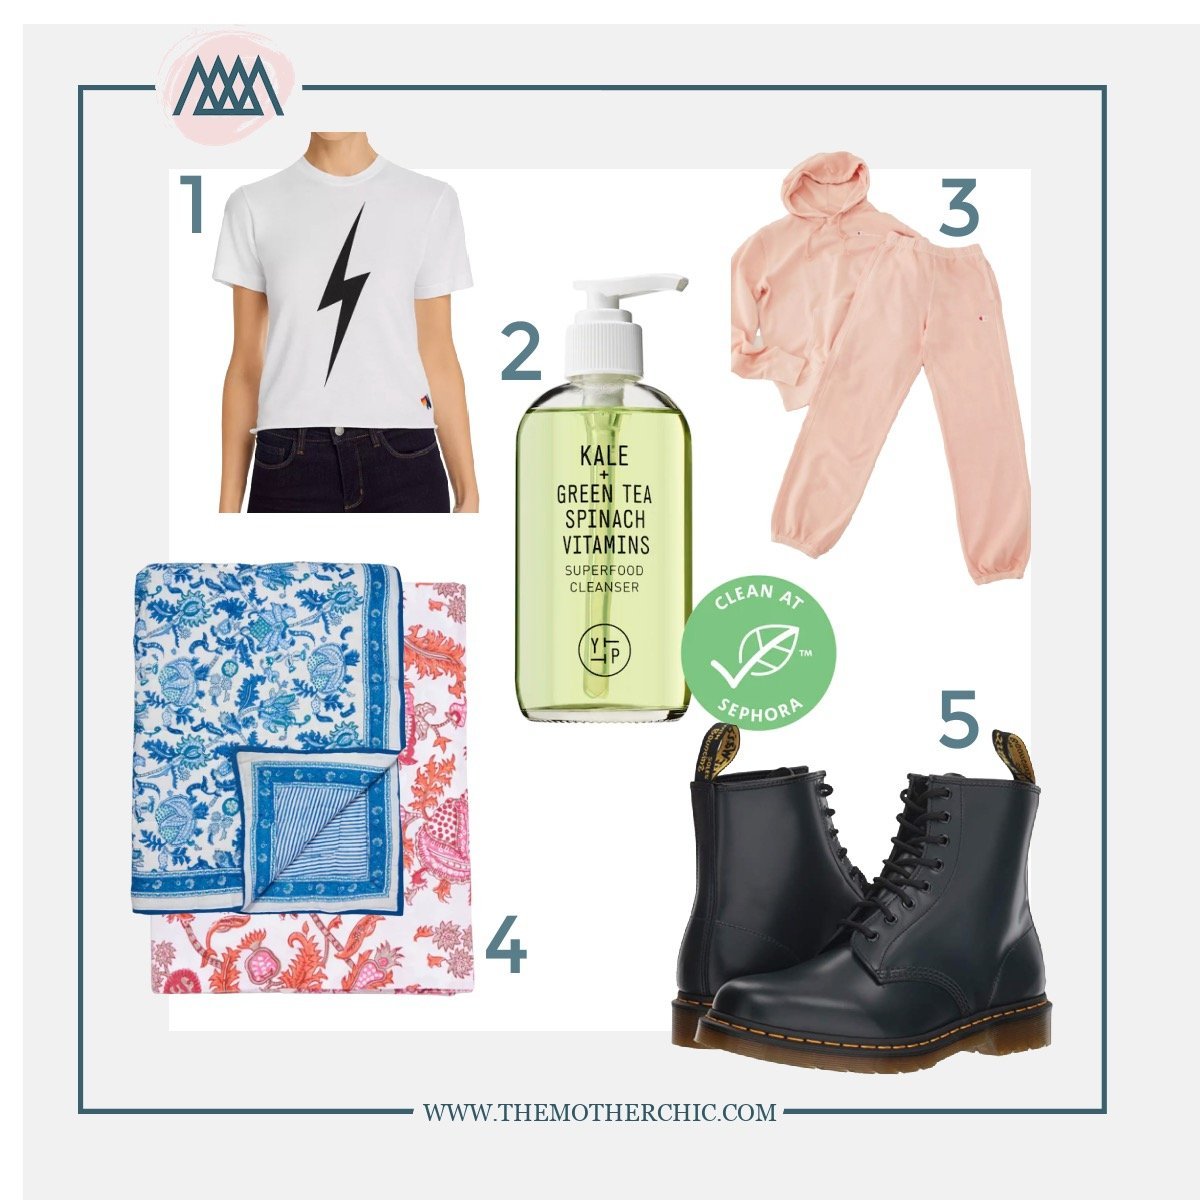 The motherchic gifts for college-aged girls